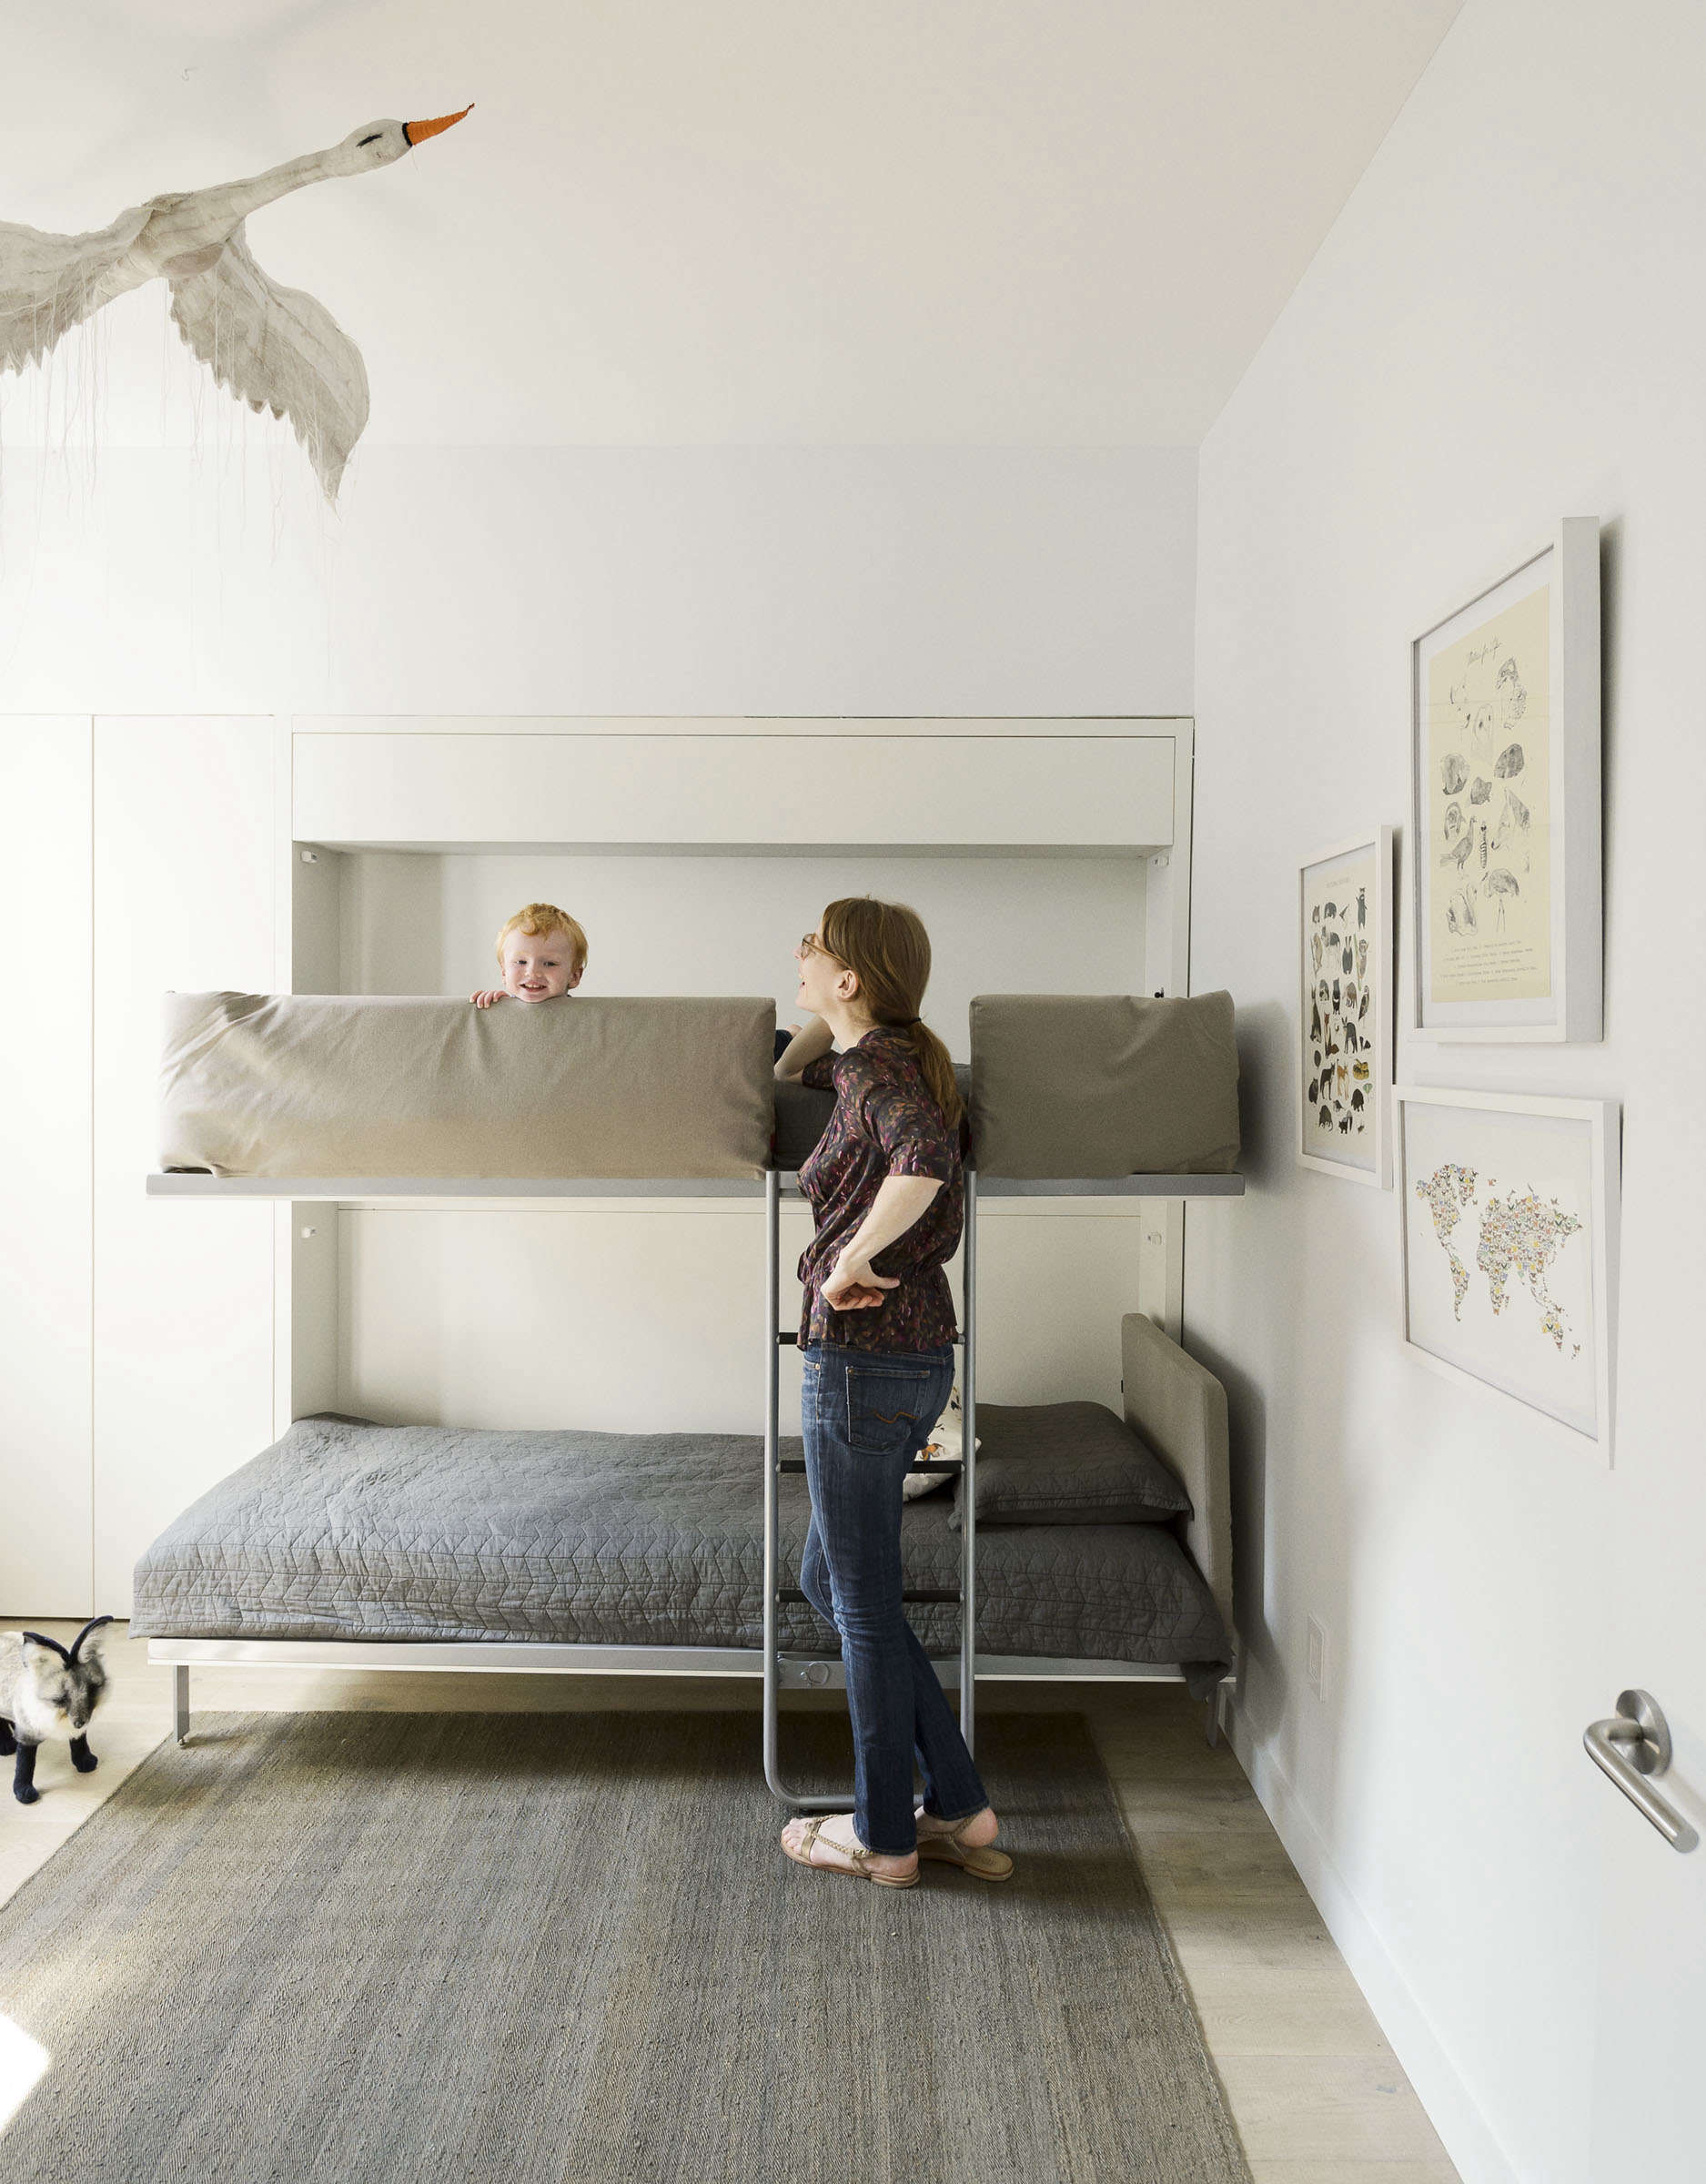 Murphy bunkbeds by Clei of Italy, Matthew Williams photo | Remodelista